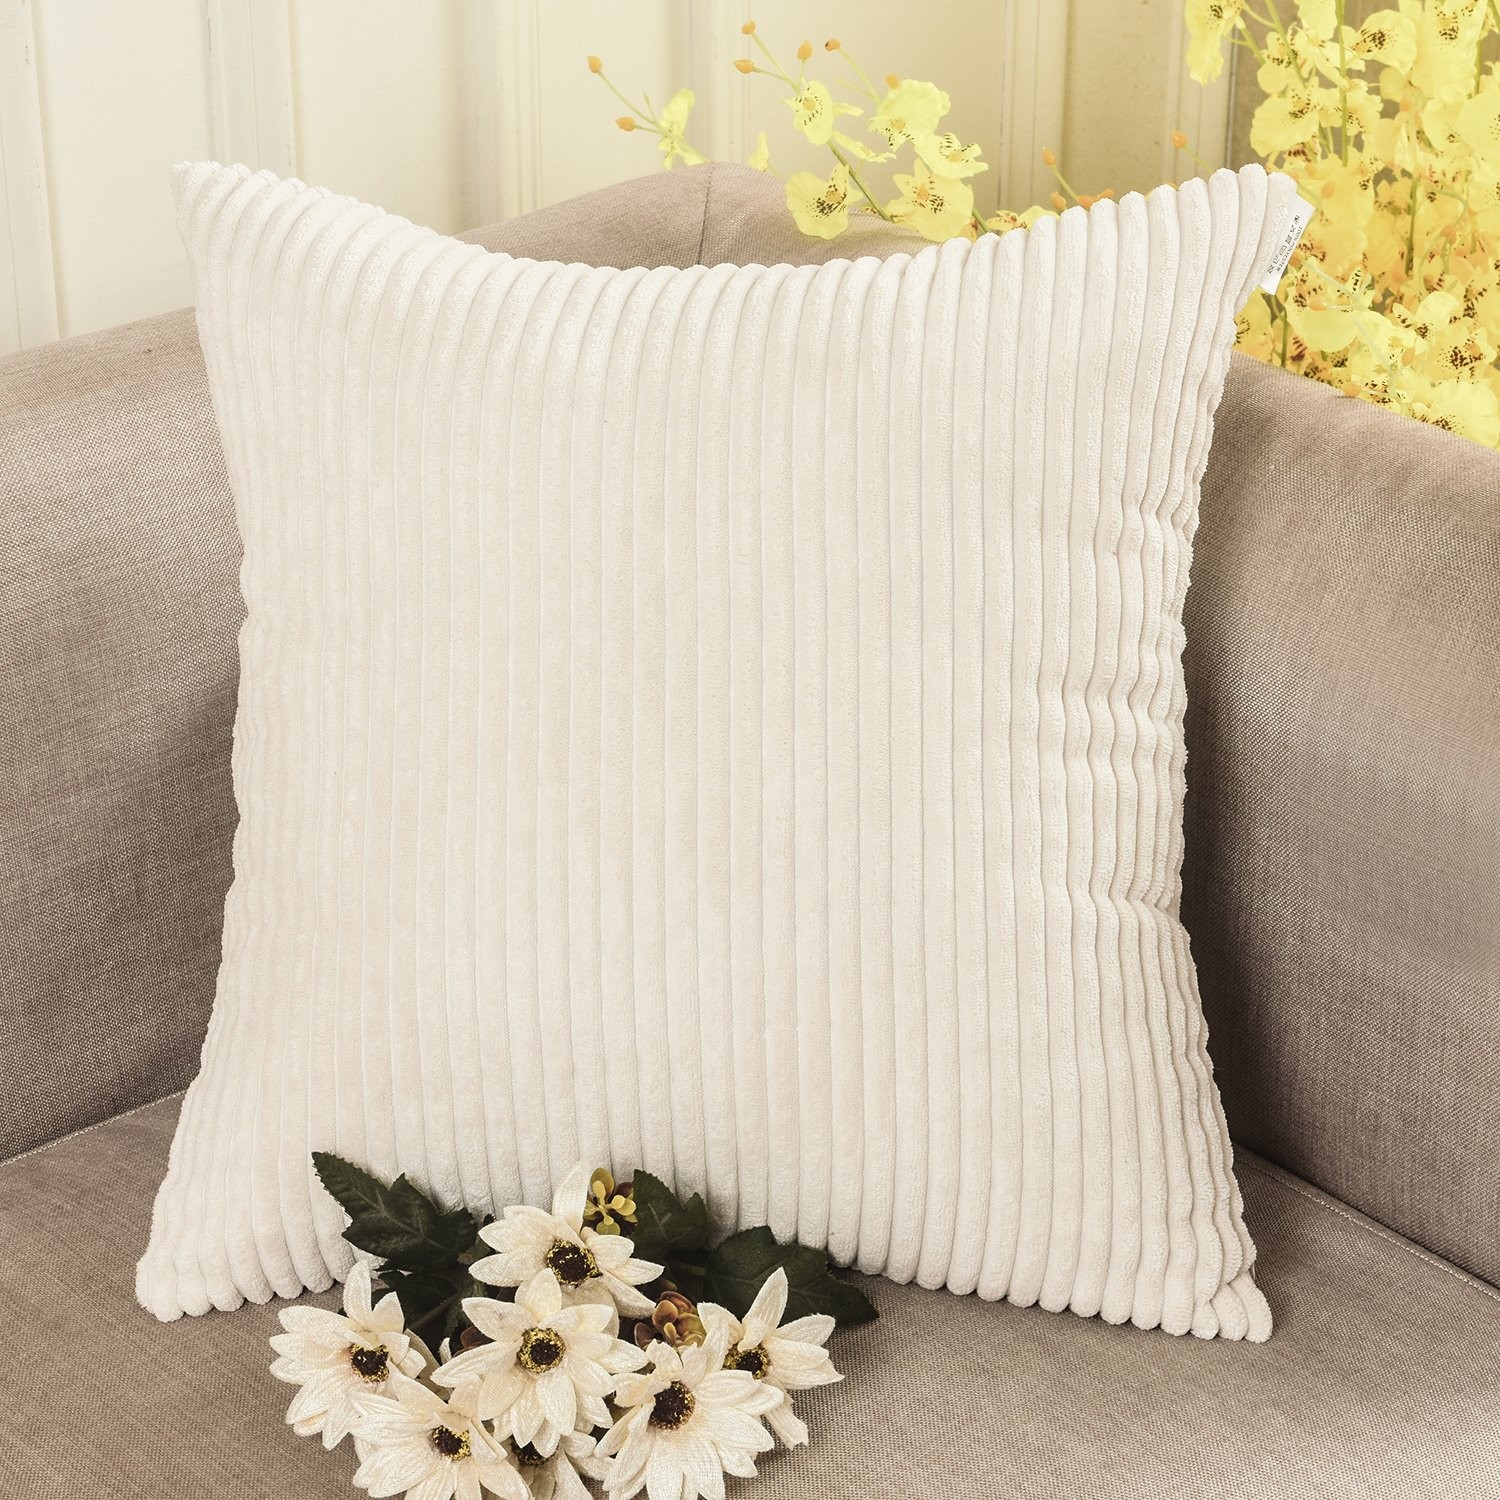 HOME BRILLIANT Winter Striped Velvet Corduroy Euro Throw Pillow Sham Large Cushion Cover for Chair, 24 x 24 inch (60cm), Cream Cheese